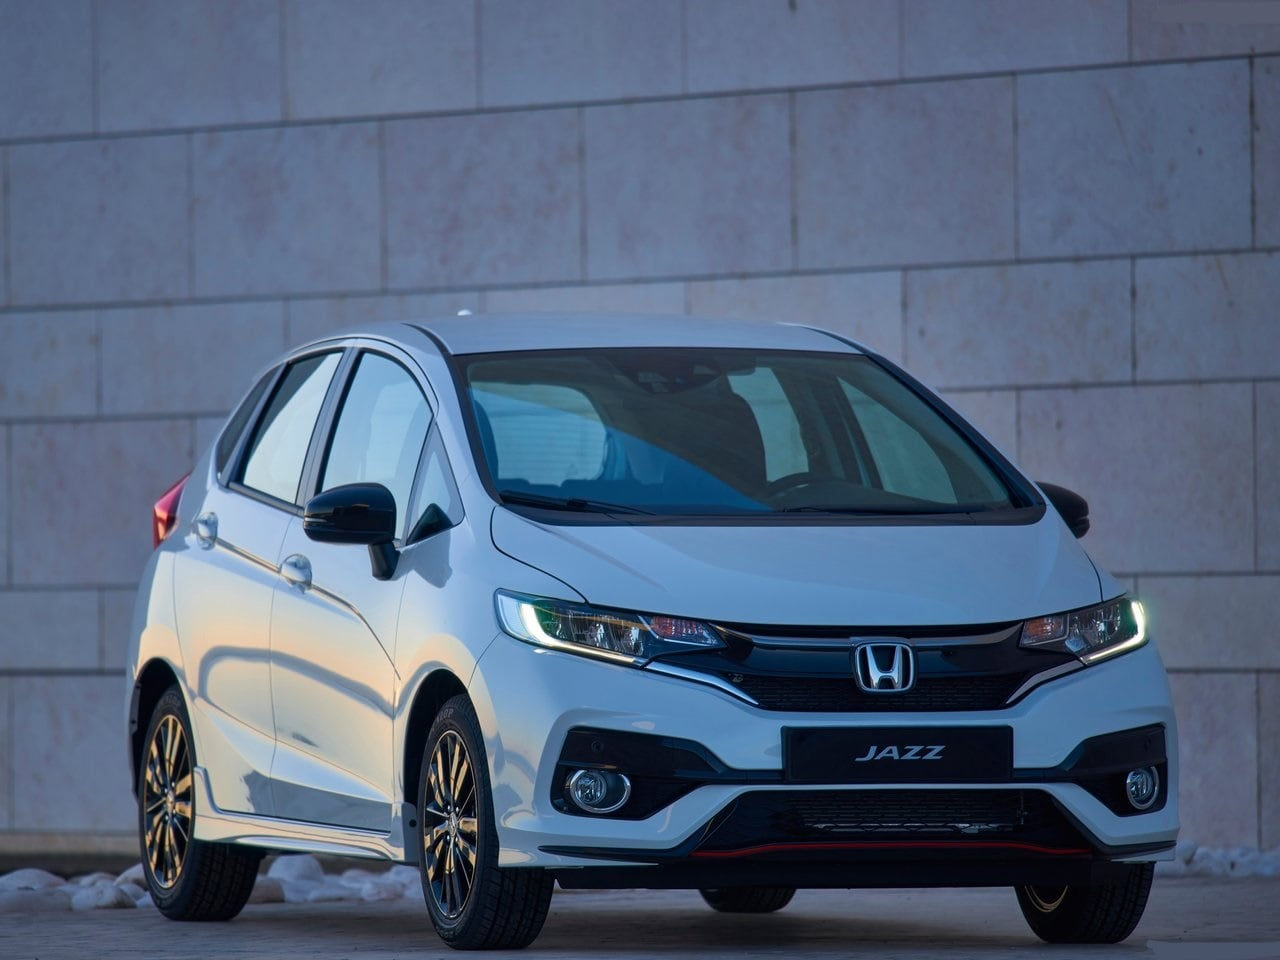 2018 honda jazz facelift launch date, price in india, specs, mileage